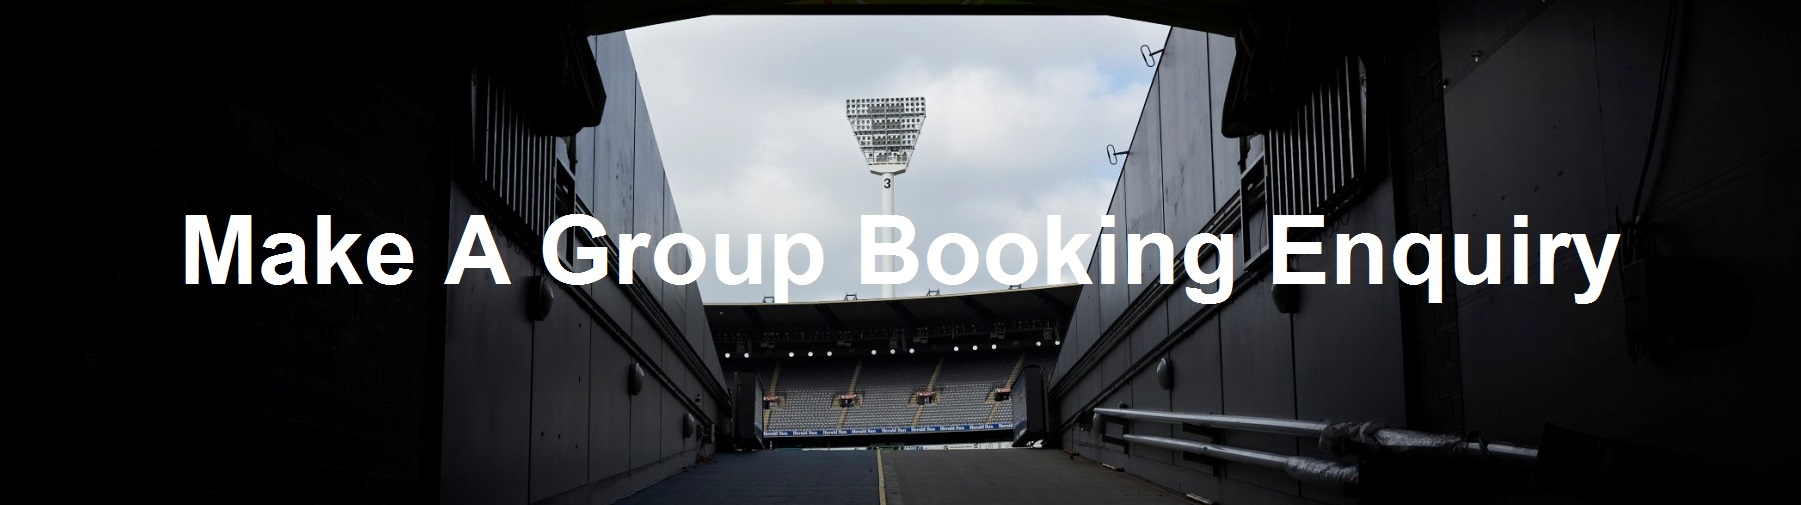 Request an MCG Tour group booking.